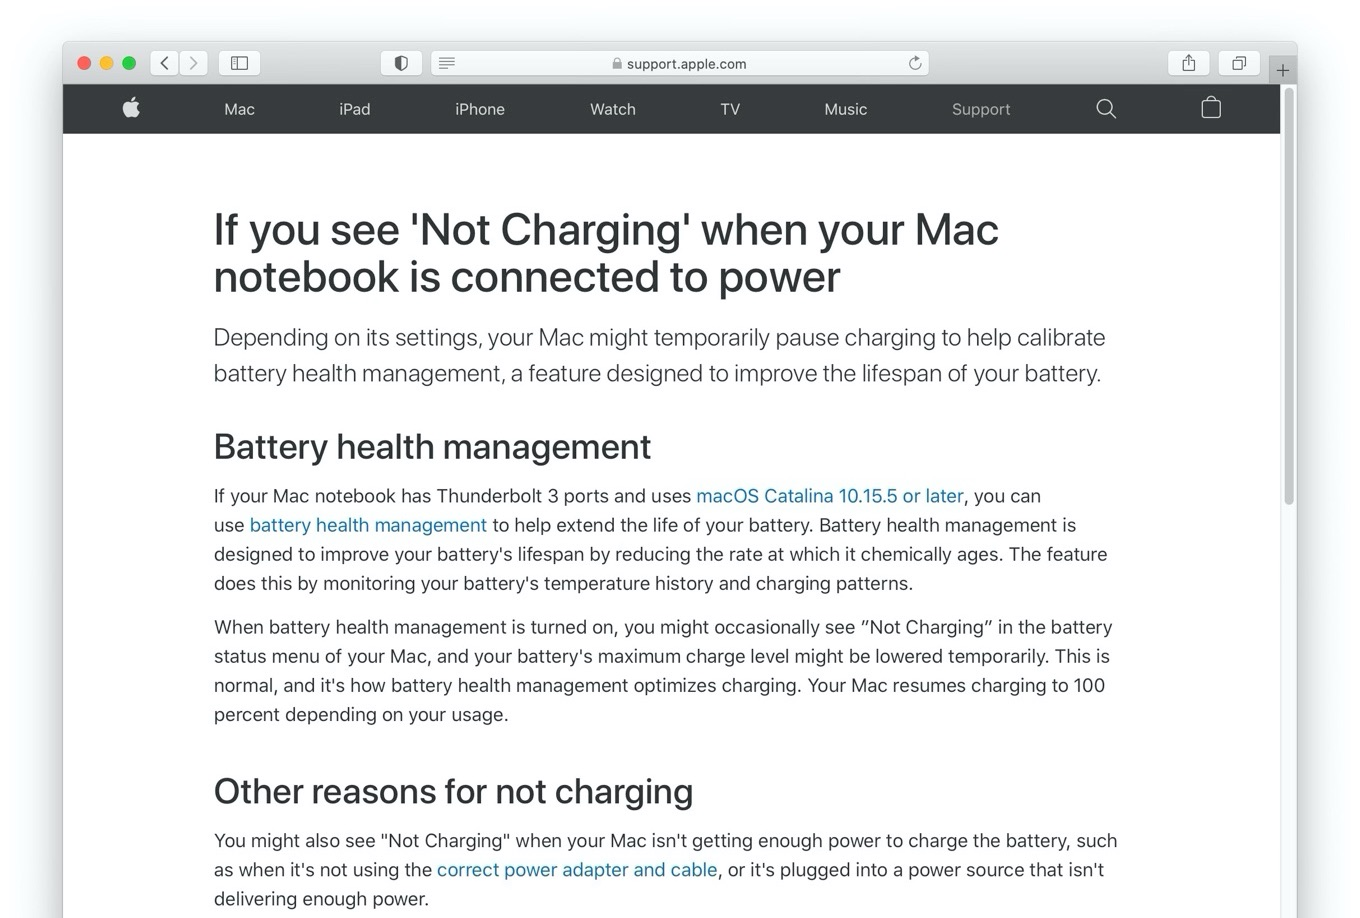 If you see 'Not Charging' when your Mac notebook is connected to power